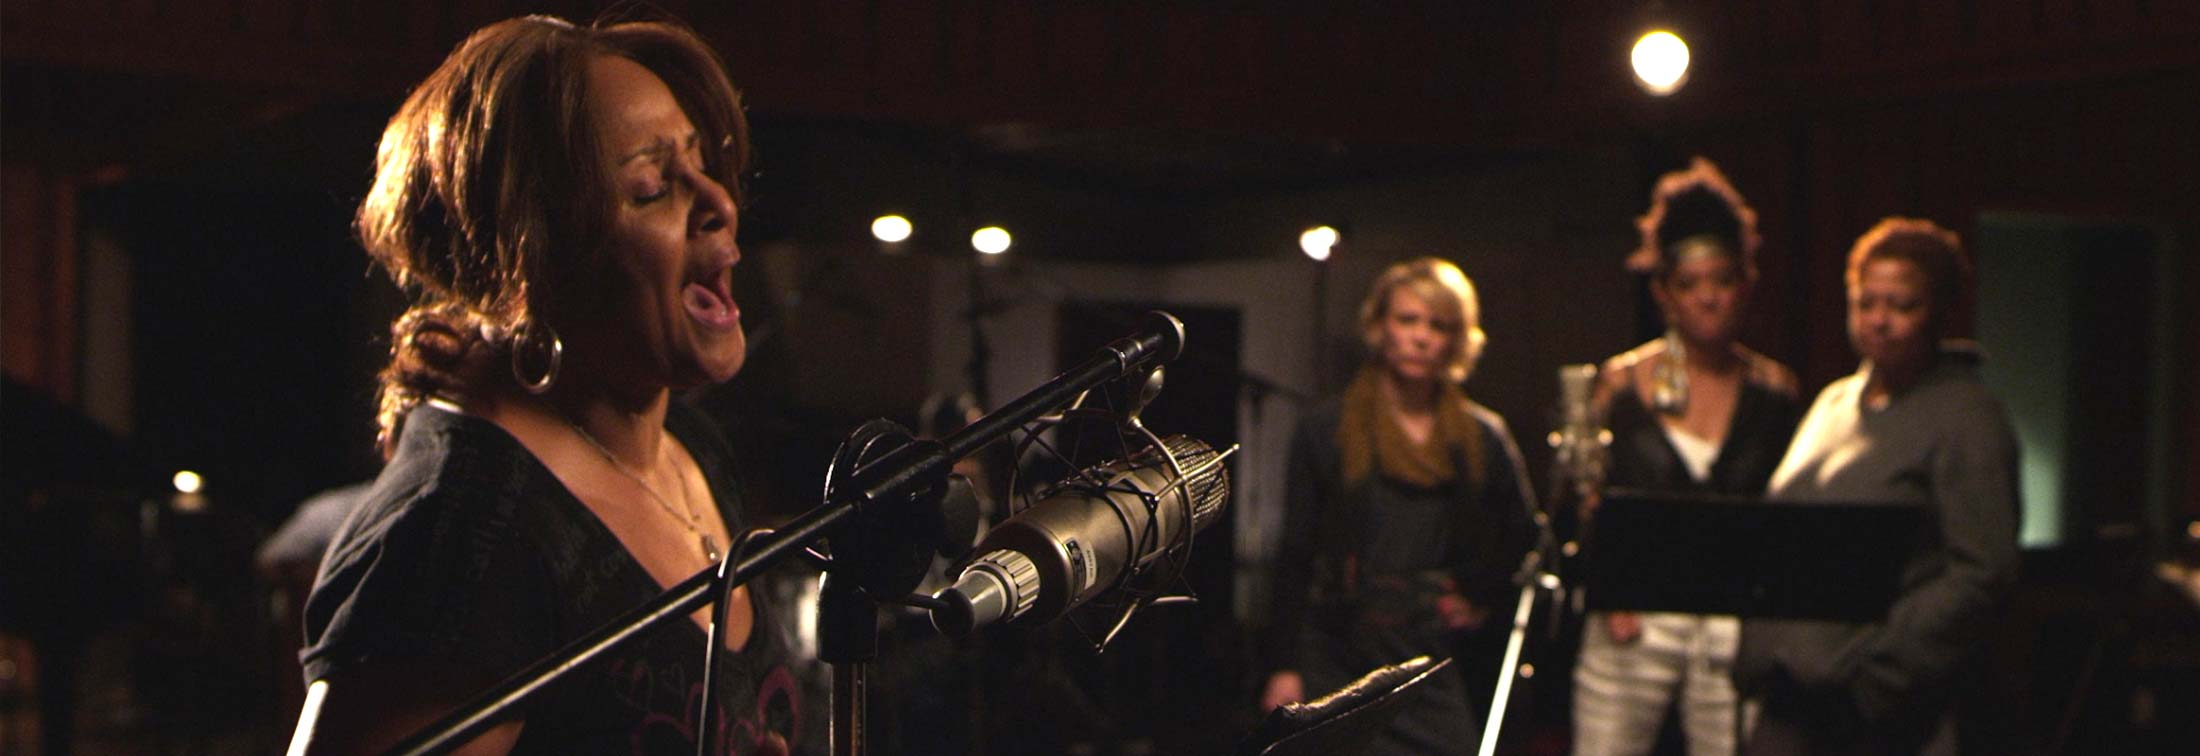 20 Feet From Stardom - inspiring and remarkable